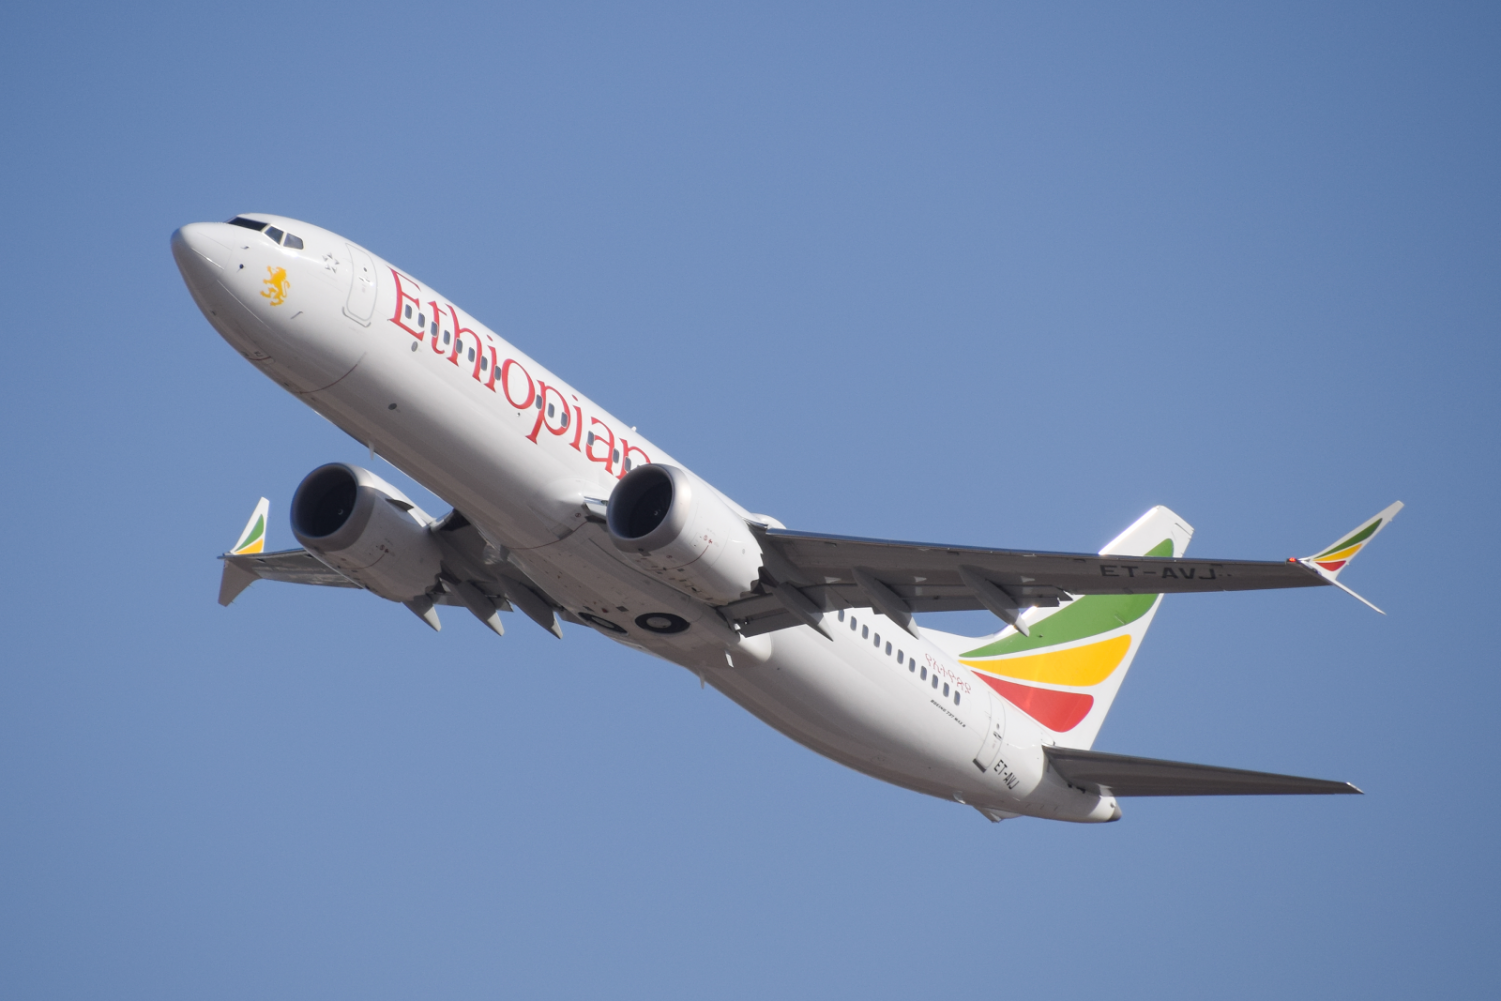 Earlier this month, an Ethiopian Airlines 737 MAX-8 (pictured above) crashed shortly after takeoff from Addis Ababa airport in the nation's capital. The similarities between this crash and the Lion Air crash that occurred recently has sparked concerns over the 737 MAX-8 and MAX-9 variant's safety.